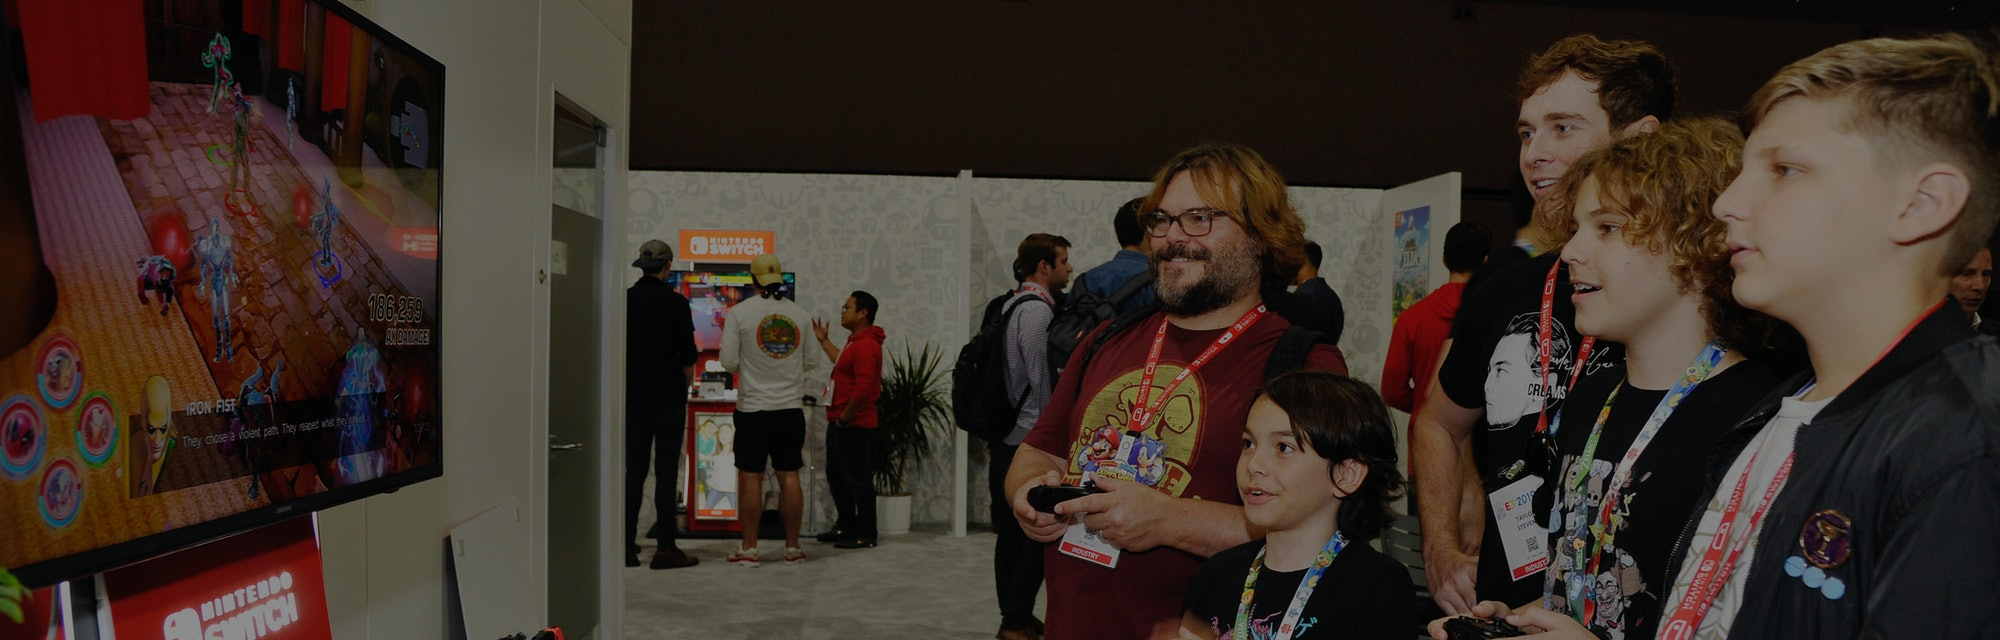 Actor Jack Black playing video games with attendees of the E3 gaming expo.